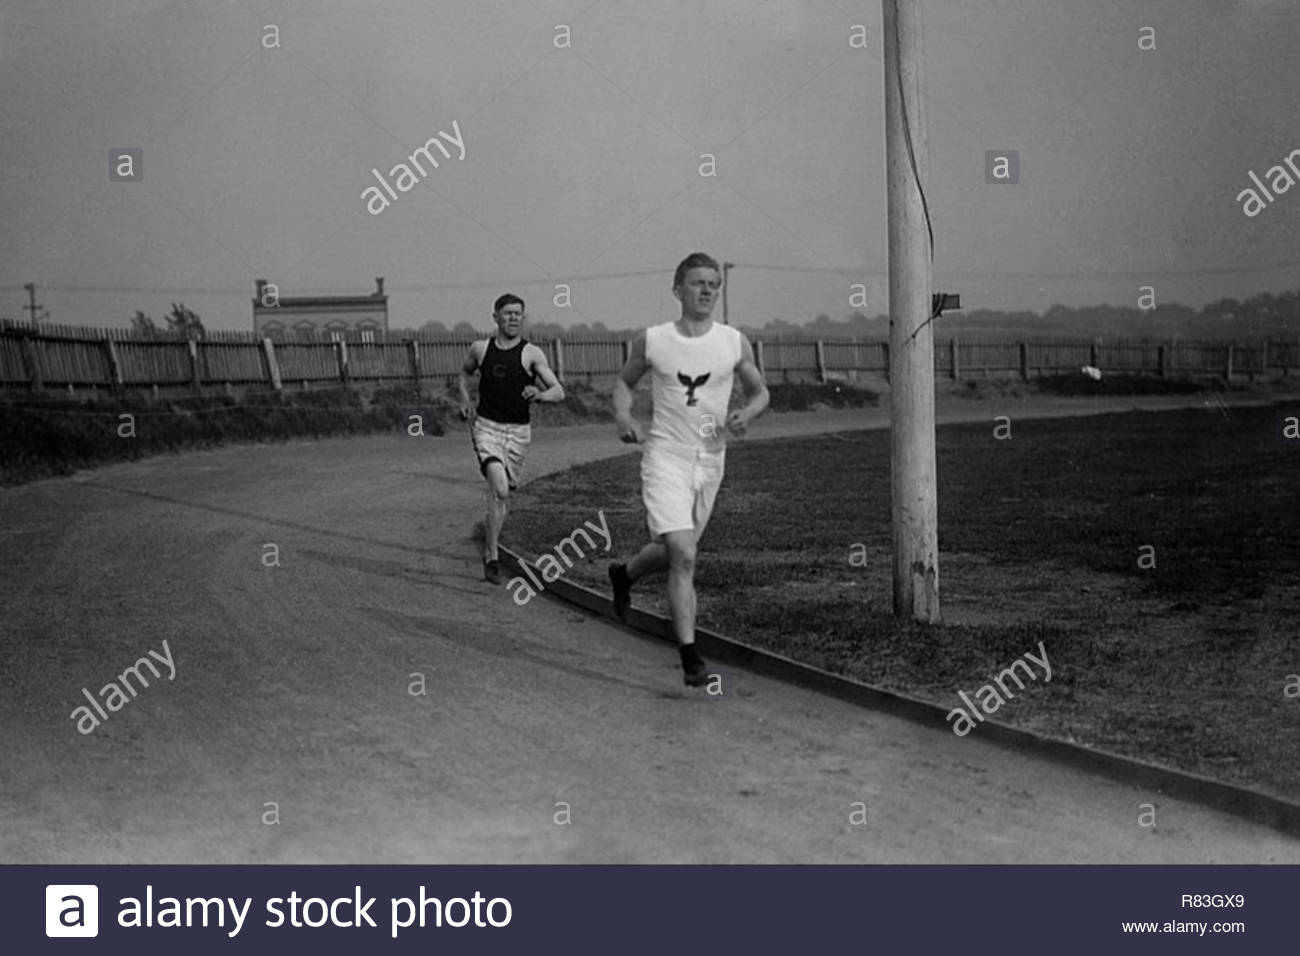 Jim Thorpe running behind Thomas McLaughlin on track at Celtic Park in Queens, New York City 1910. - Stock Image